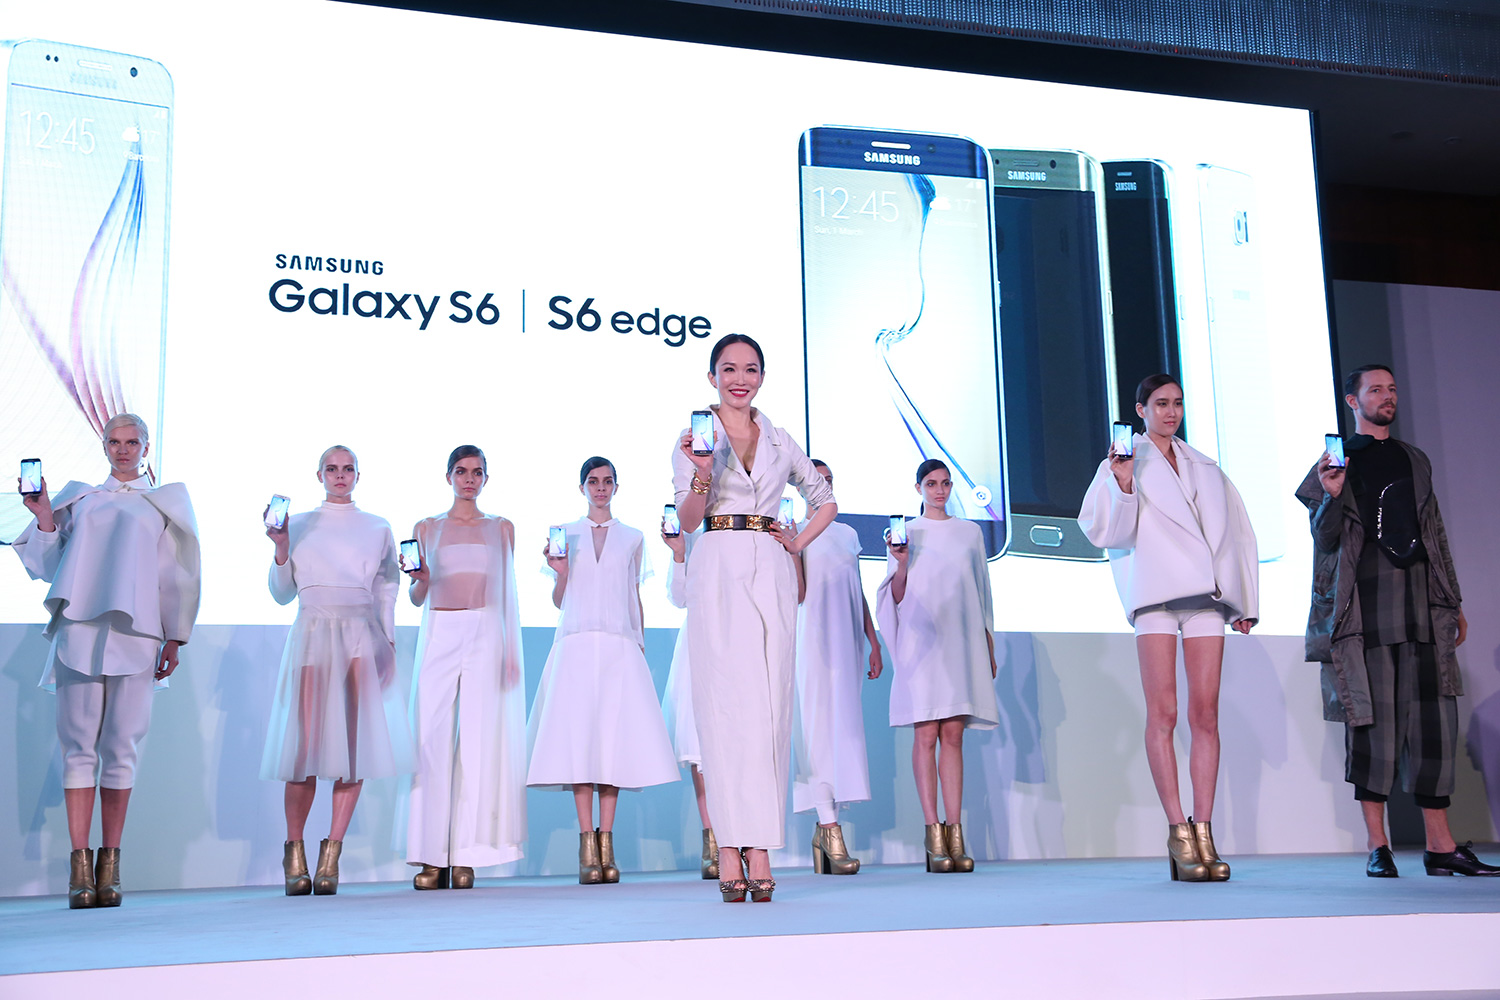 International-artiste-Fann-Wong-leading-an-entourage-of-models-wearing-beautiful-and-sophisticated-pieces-inspired-by-the-Galaxy-S6-4G+-and-Galaxy-S6-edge-4G+,-designed-by-Max-Tan-and-Joe-Chia